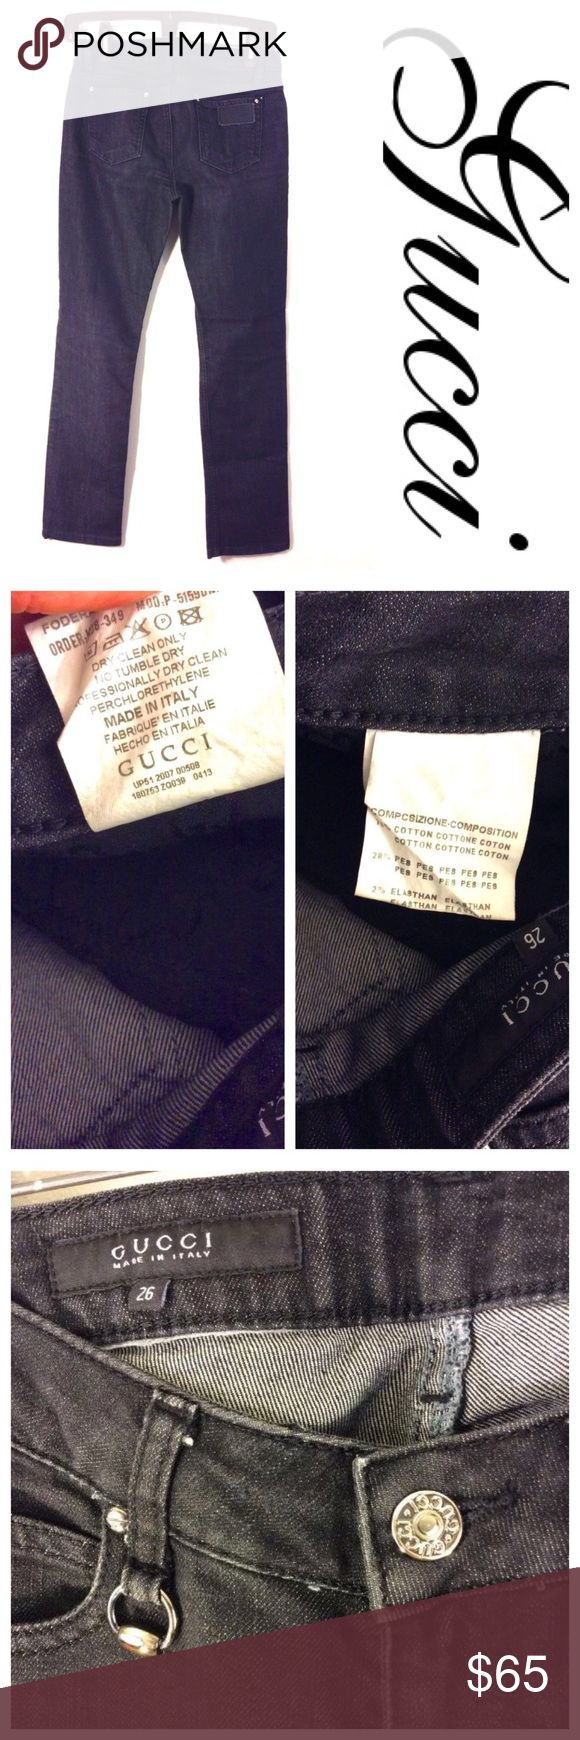 """Gucci Authentic black denim logo JEANS 26 🇮🇹 Authentic womens Jeans by GUCCI Made in Italy Size: 26 Material: Jean / denim Style:  slightly faded denim jeans straight 100% AUTHENTIC, GUARANTEED Waist: 13"""" flat across  Rise: 7"""" Inseam: 29 1/2"""" hemmed? Condition : Pre-owned, light wash wear.. Gucci Jeans Straight Leg"""